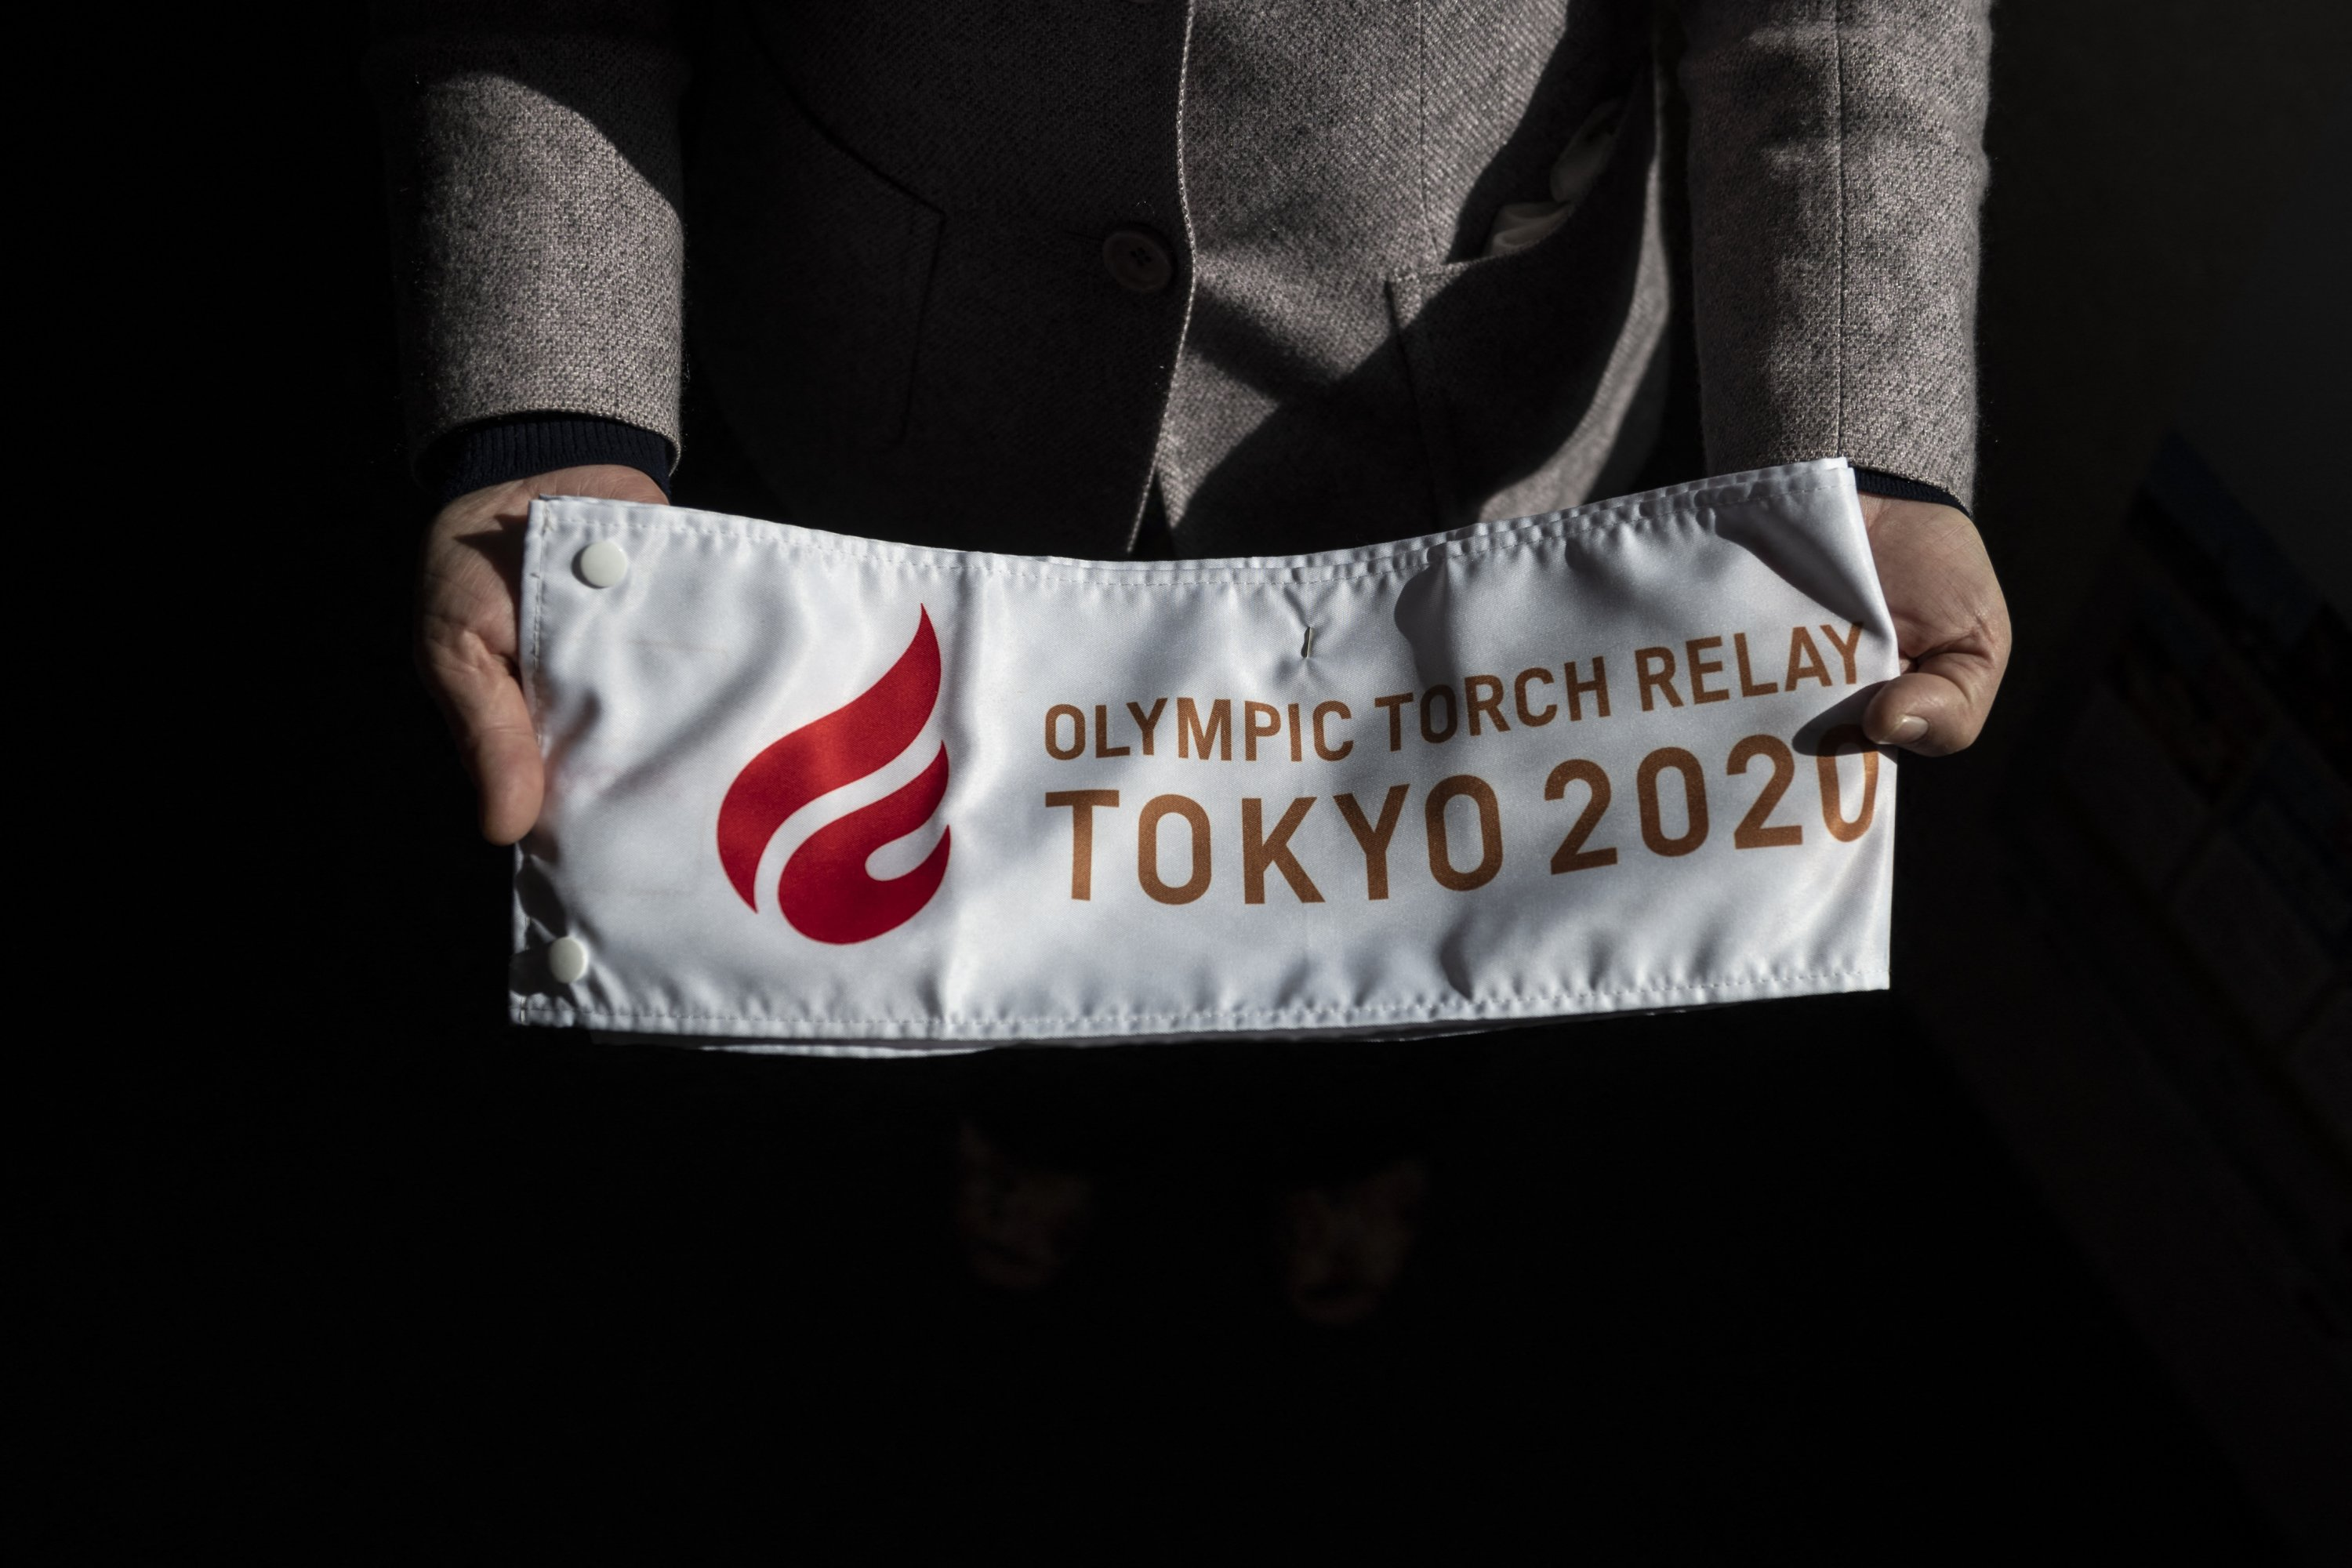 Tokyo 2020 Olympic torch relay runner Yumiko Nishimoto holds a Tokyo 2020 banner at a community center in Hirono, Fukushima Prefecture, Japan, Feb. 28, 2021.